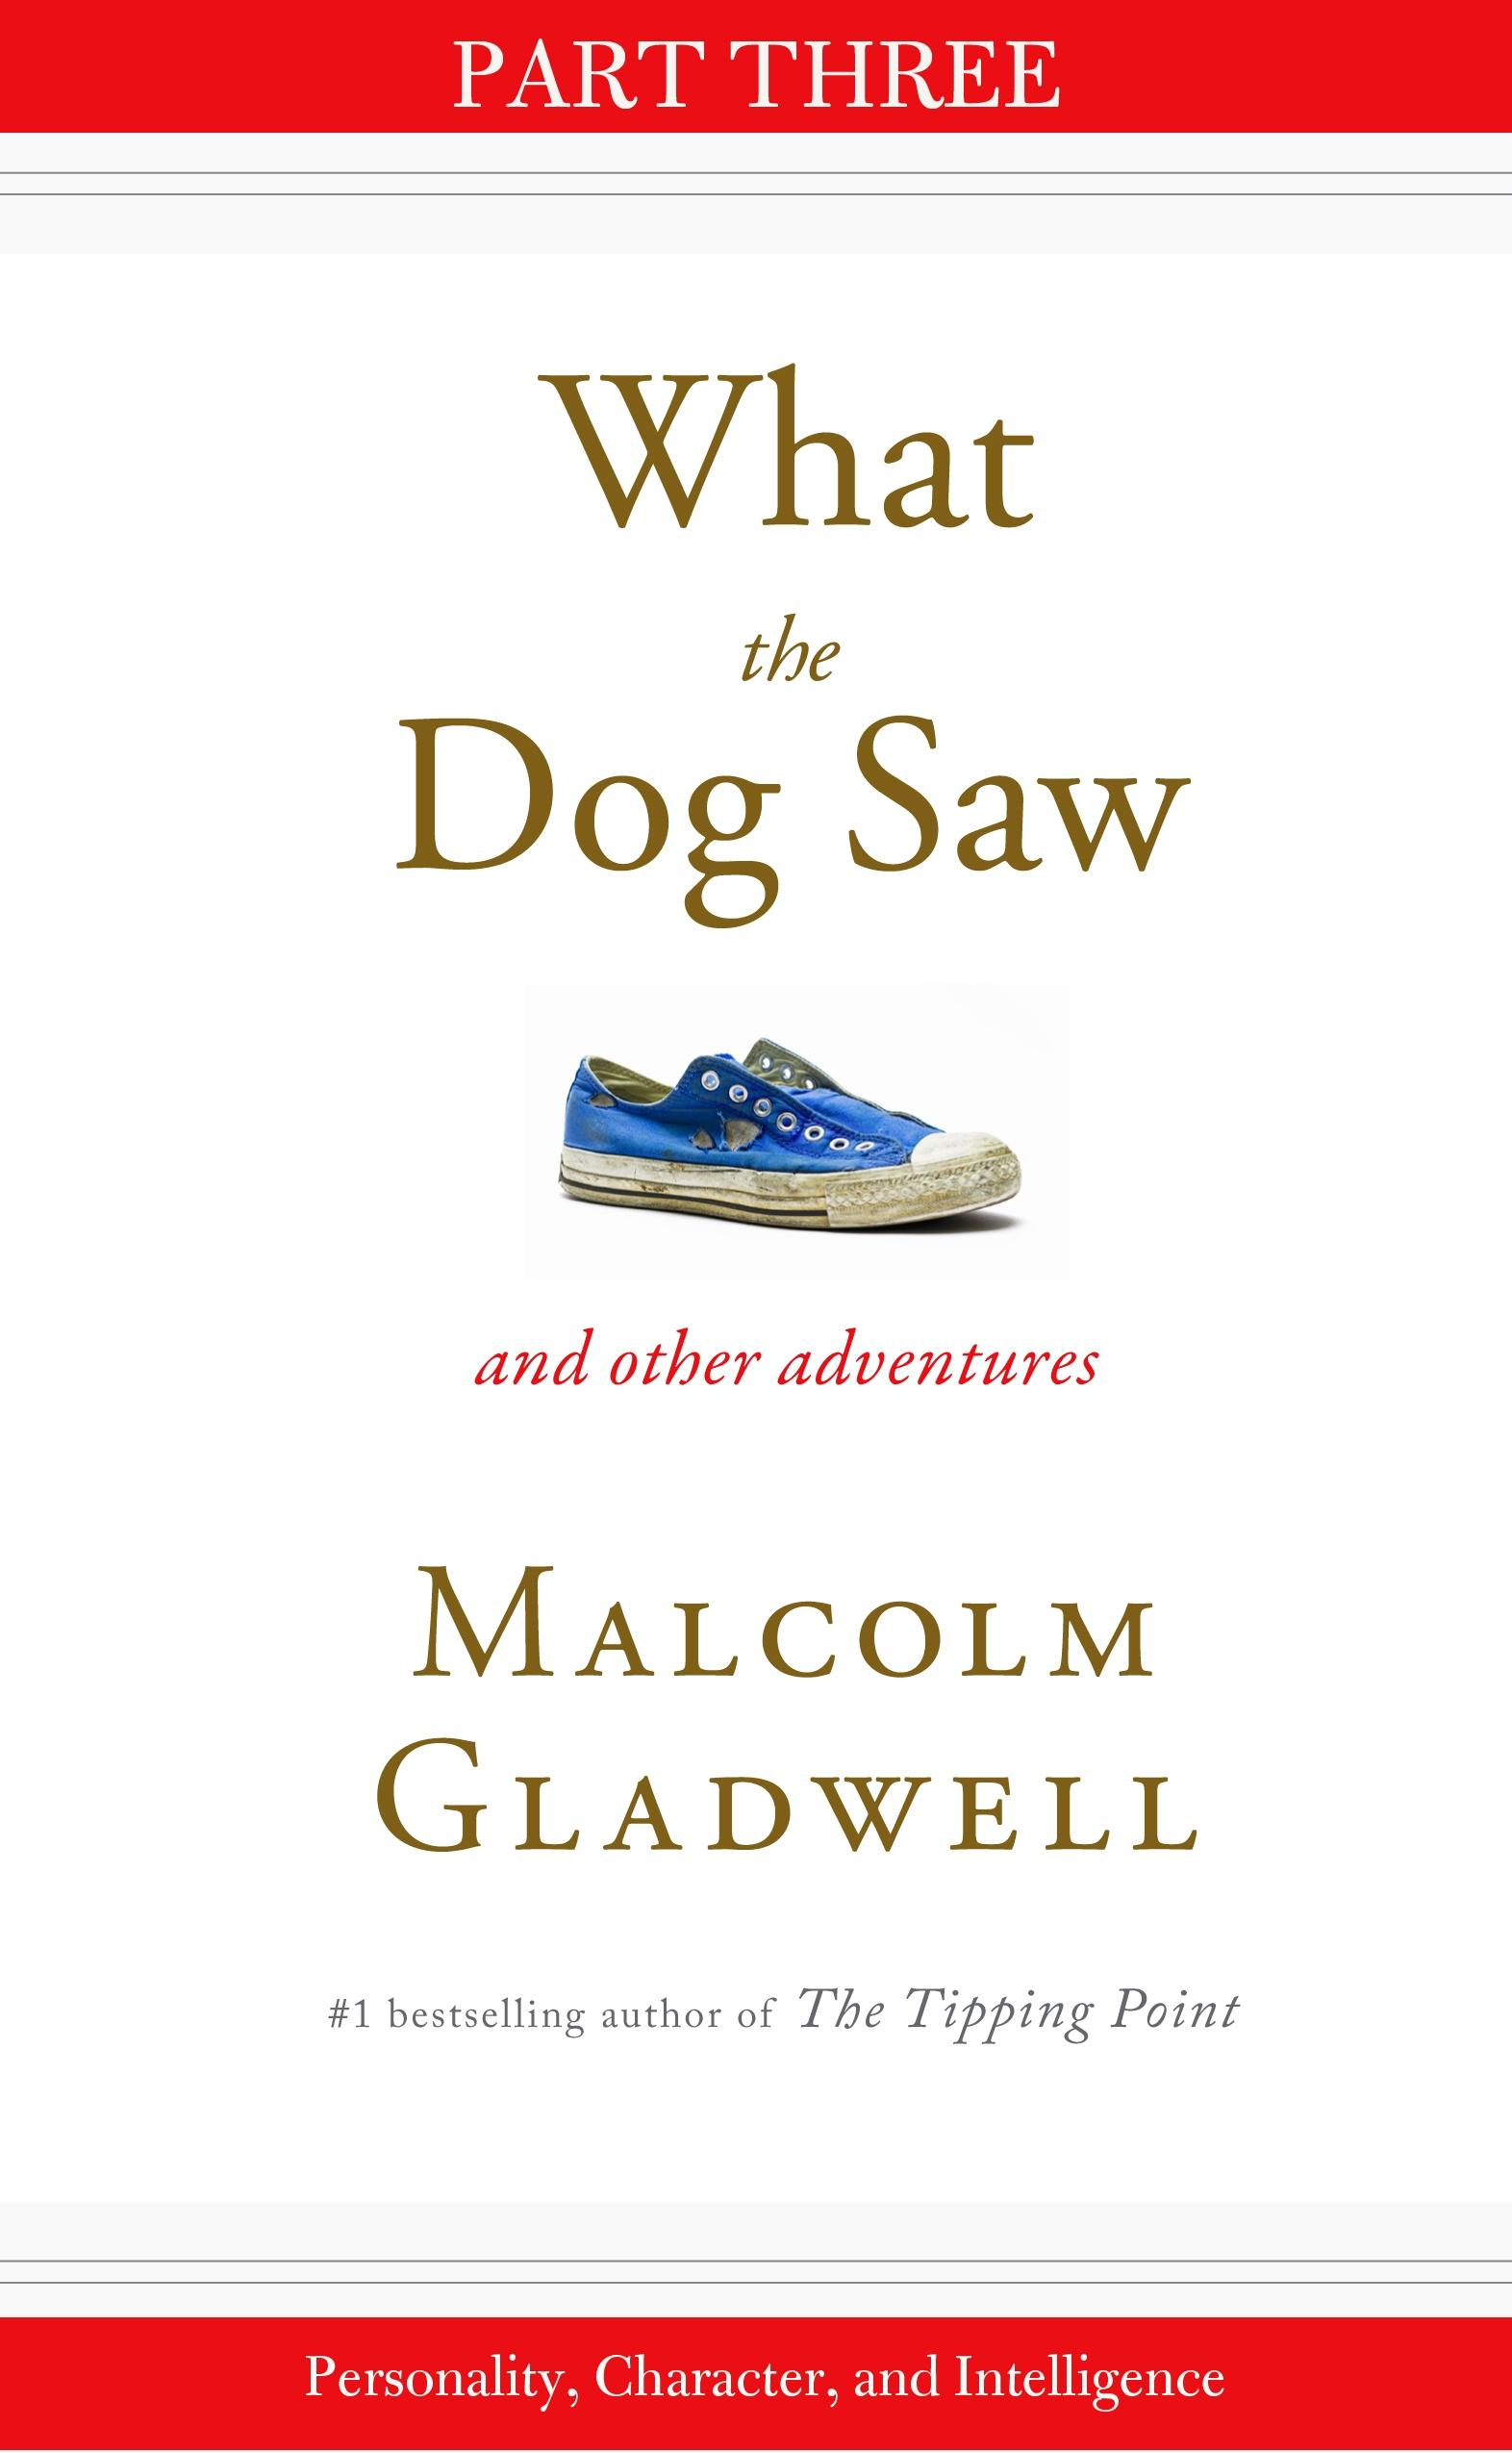 Personality, Character, and Intelligence - Malcolm Gladwell